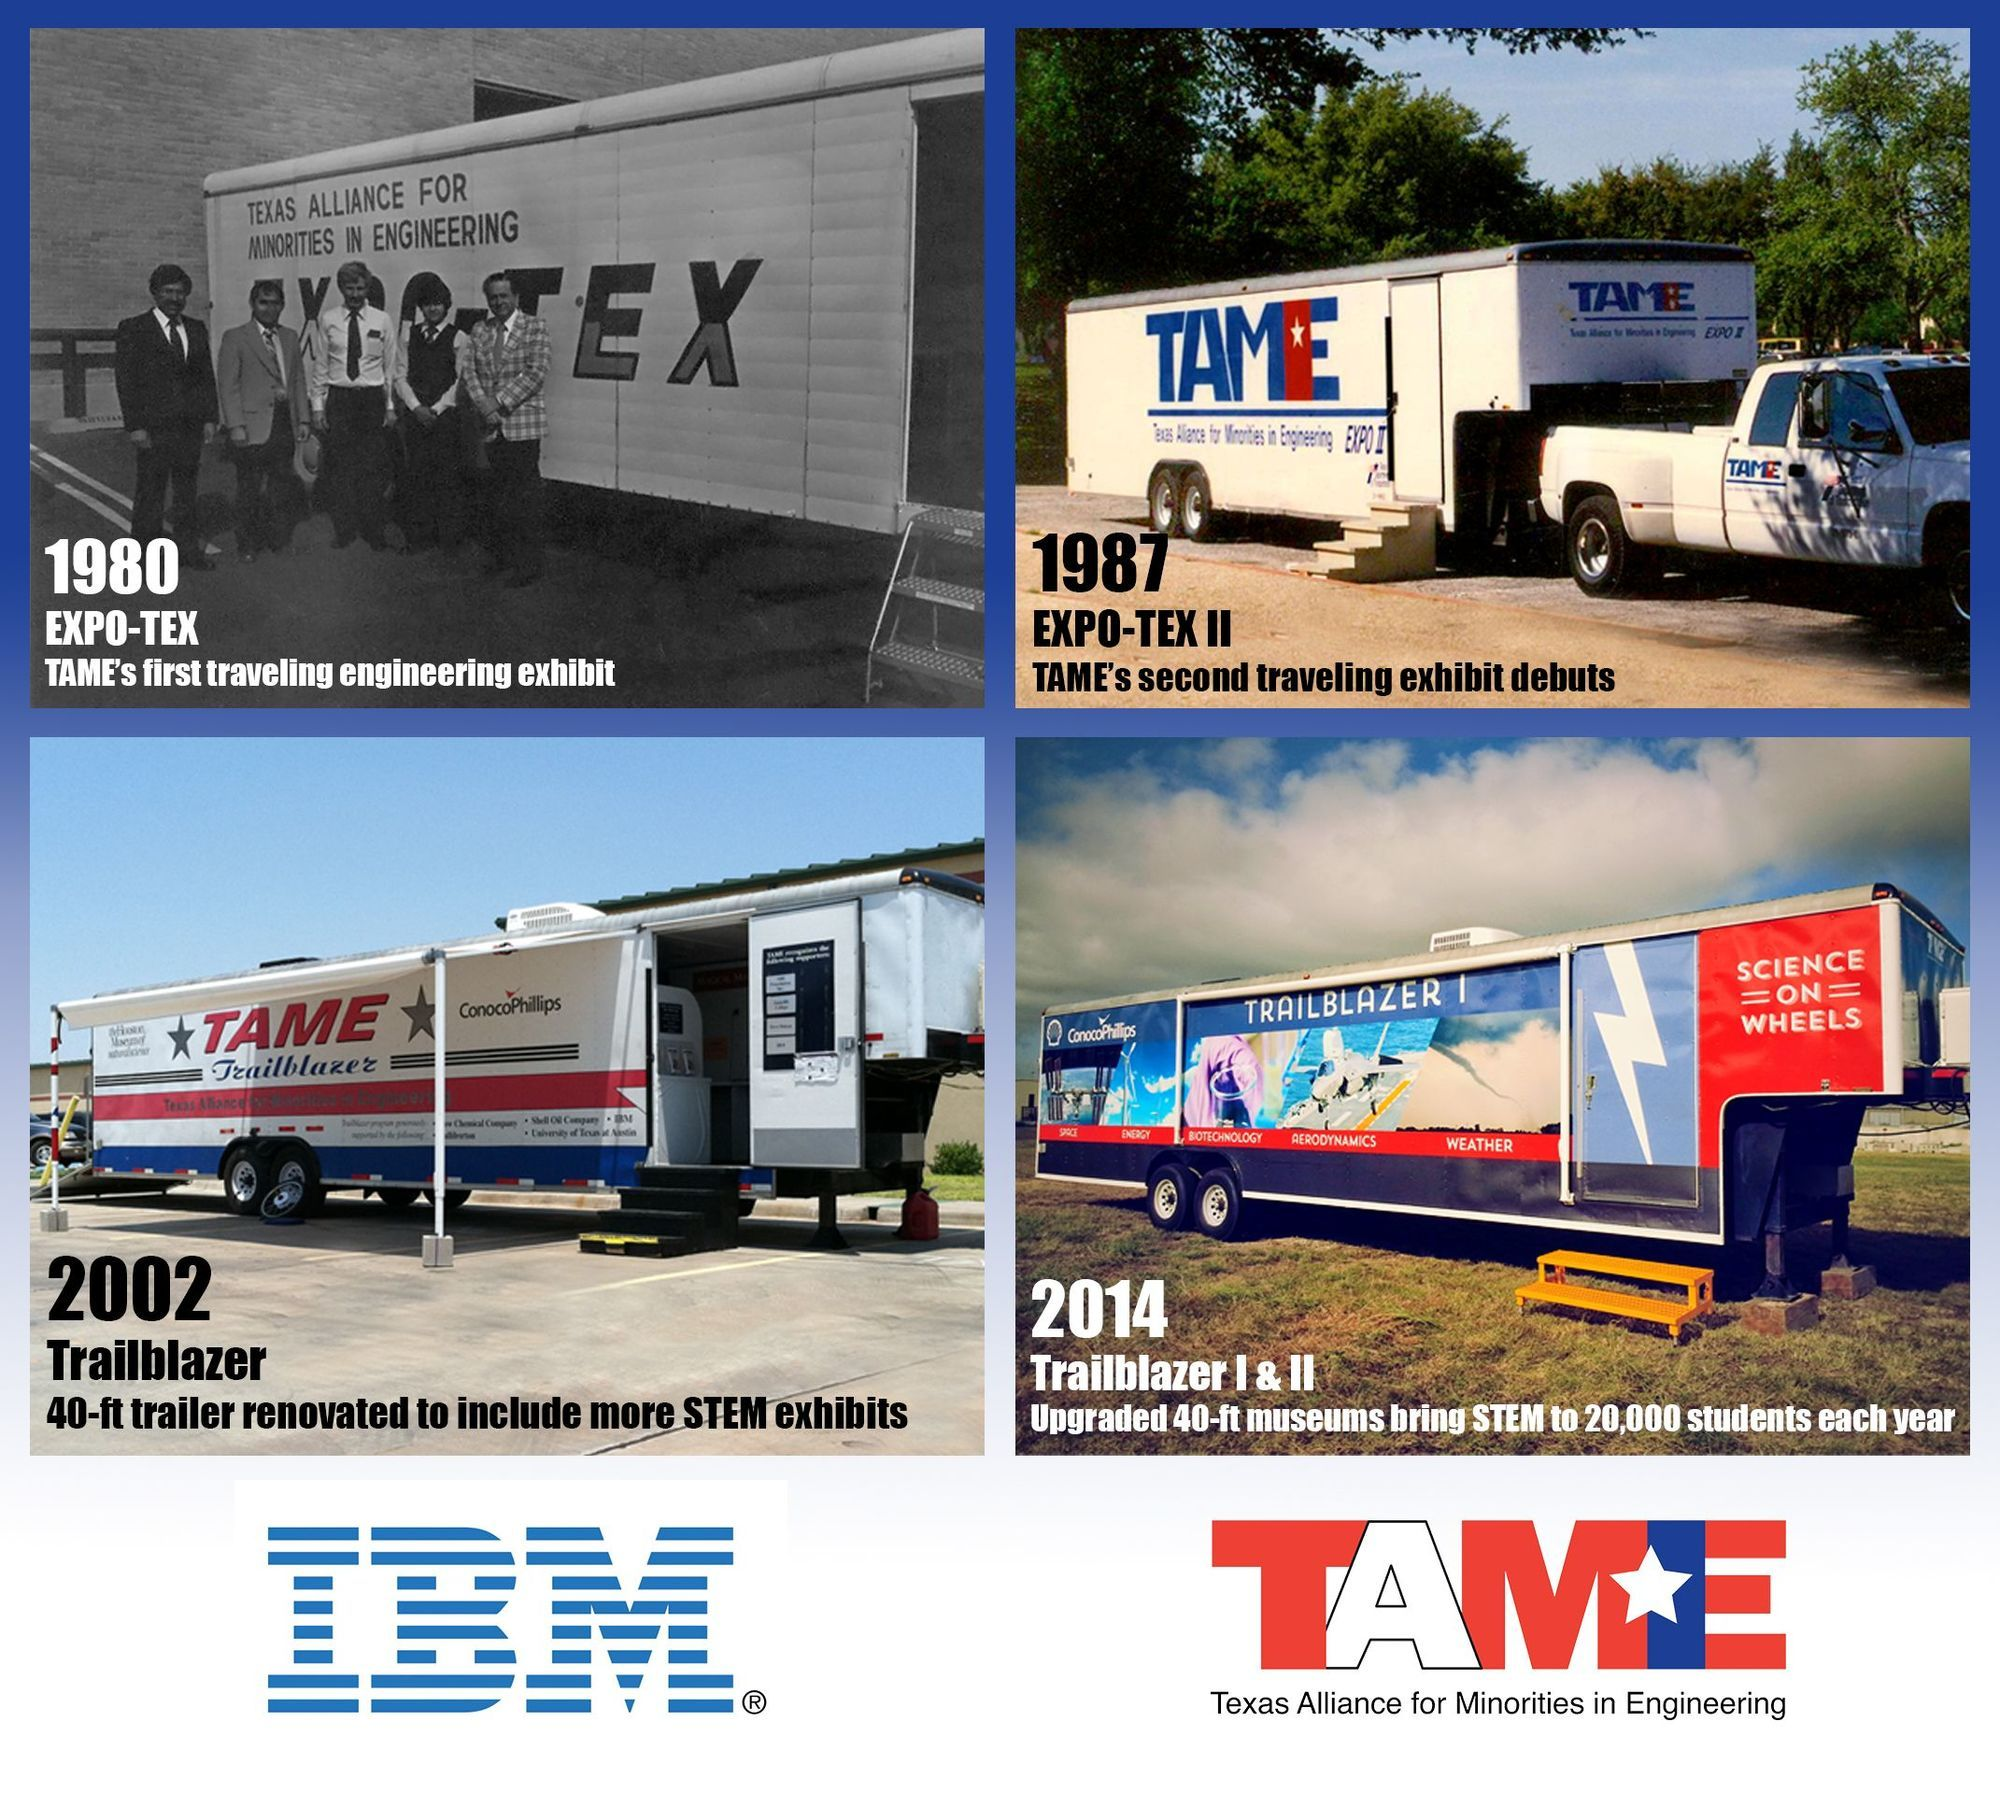 Since the 1970s, TAME Partner IBM has been helping launch students into STEM careers with programs like TAME's Trailblazer mobile science museums.